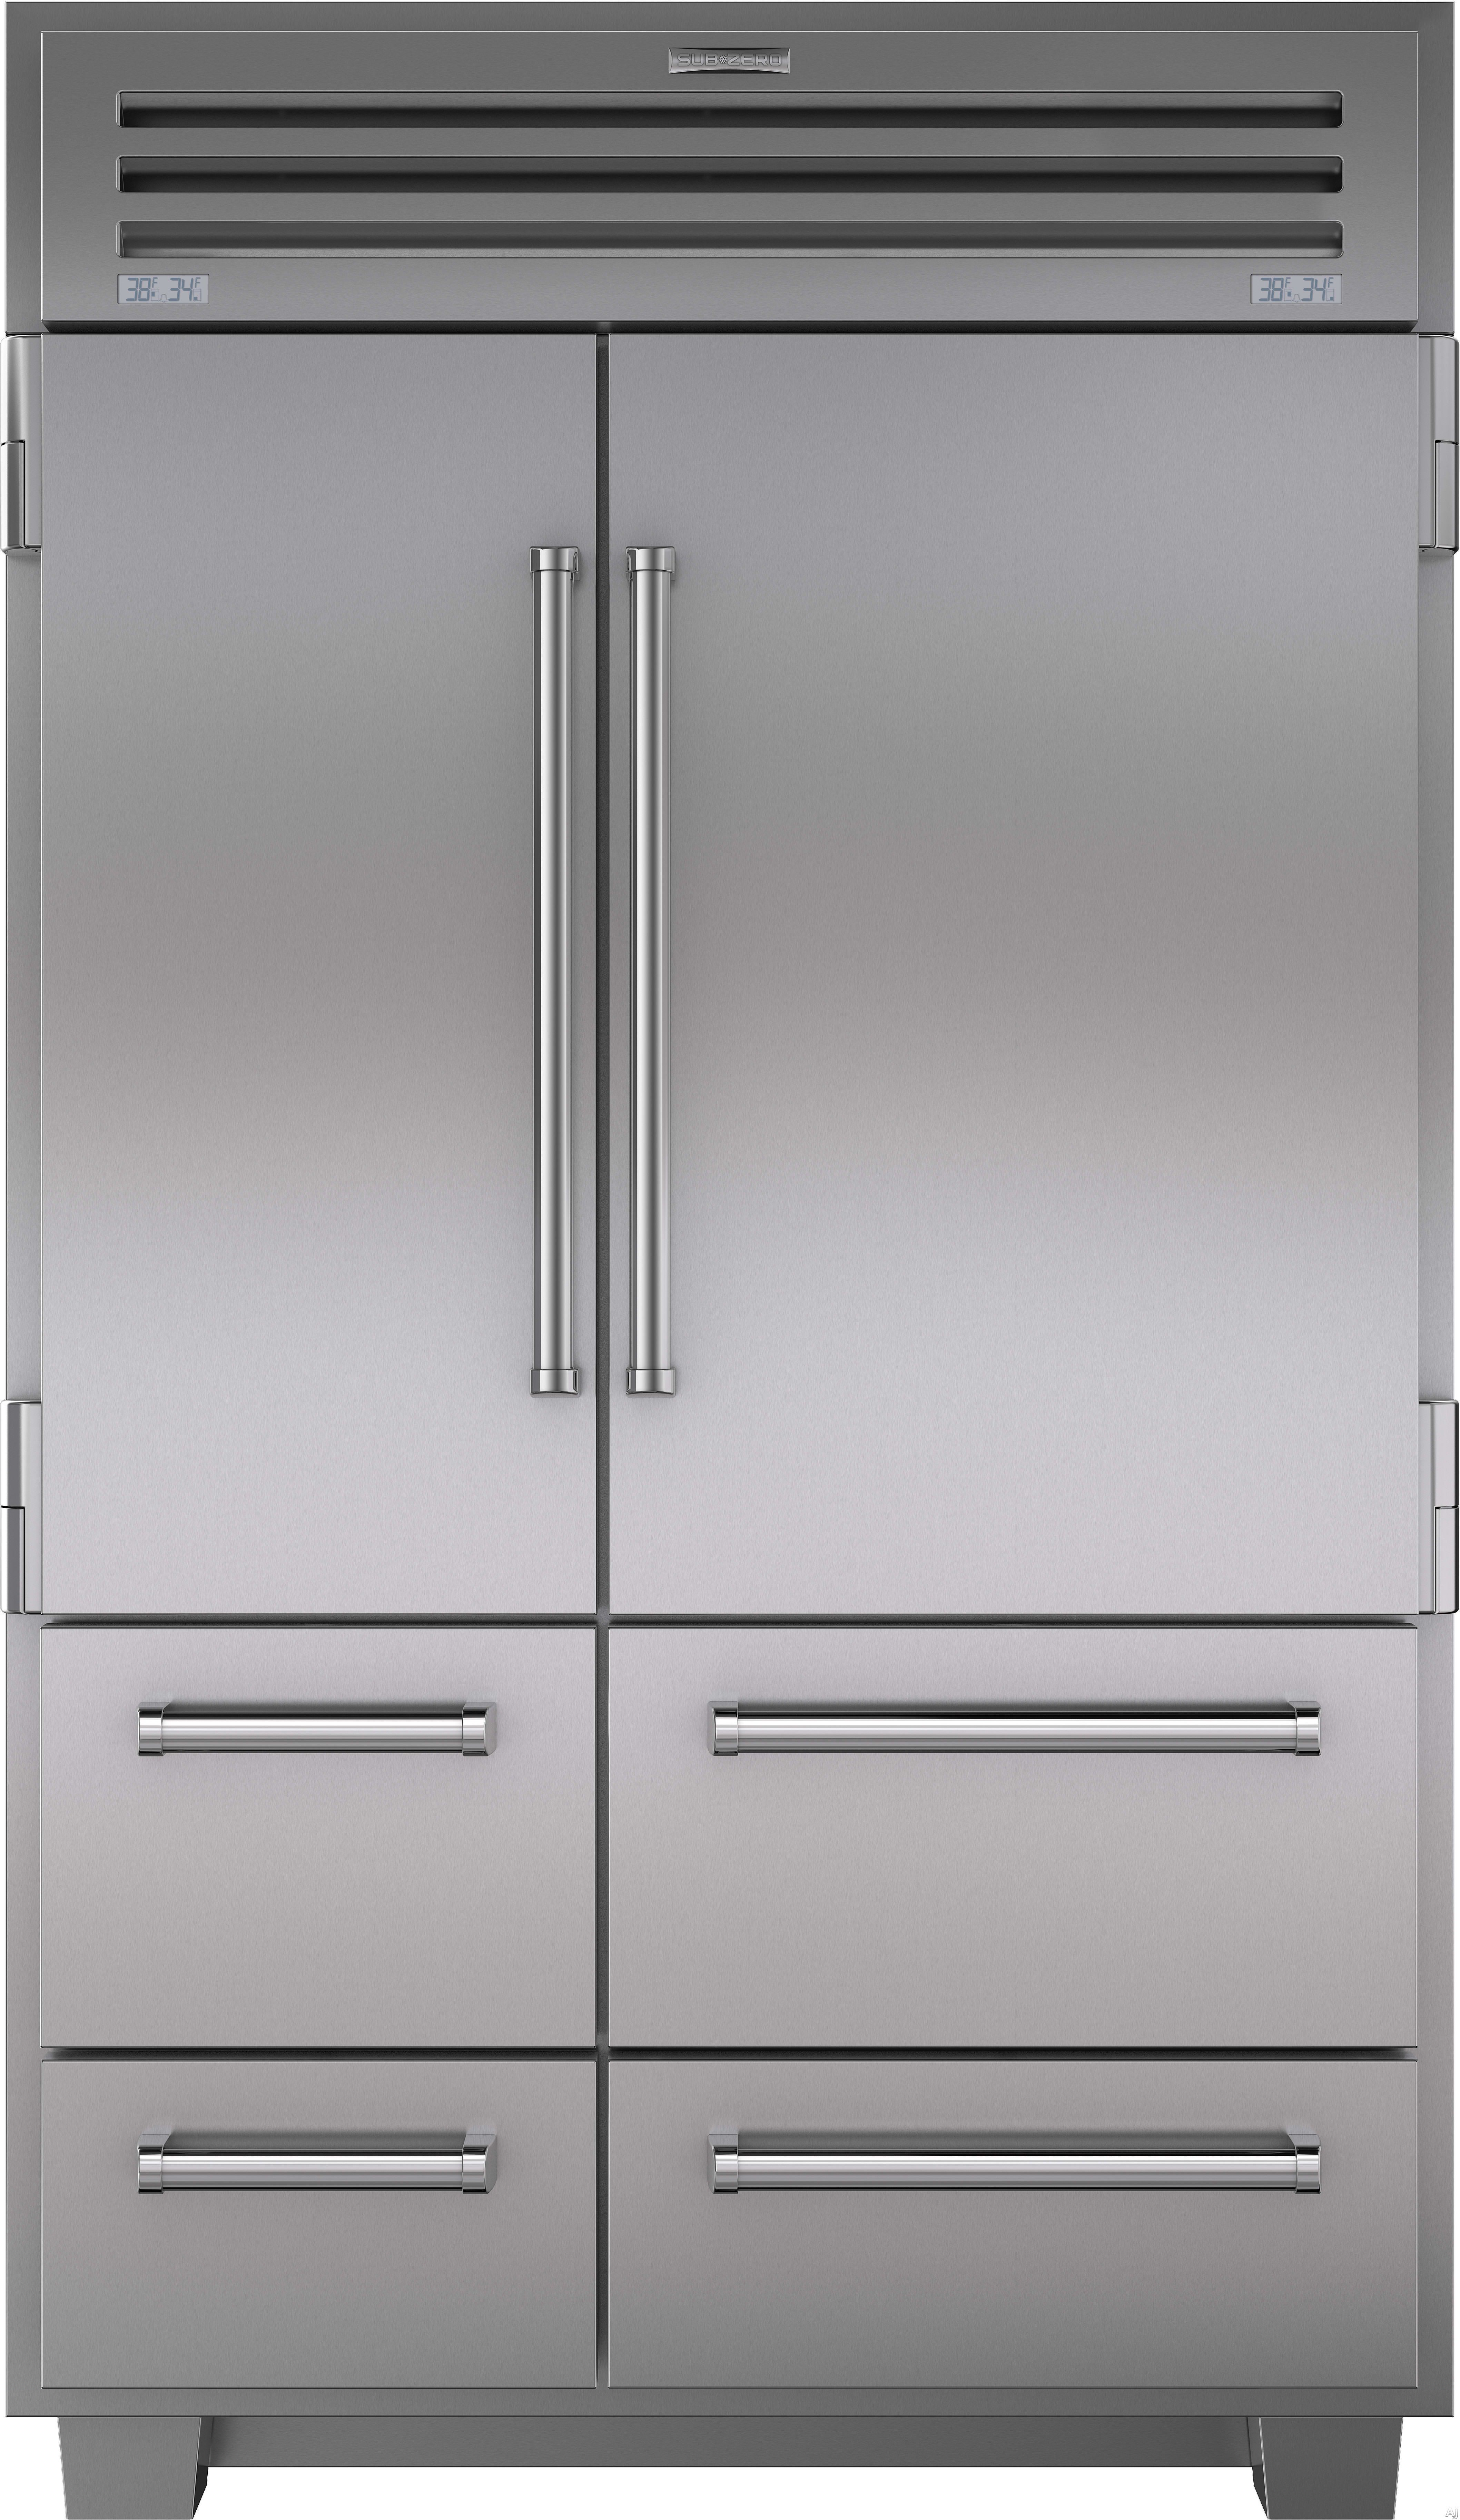 $16 950 Sub Zero 648PRO 48 Inch Built in Side by Side Refrigerator